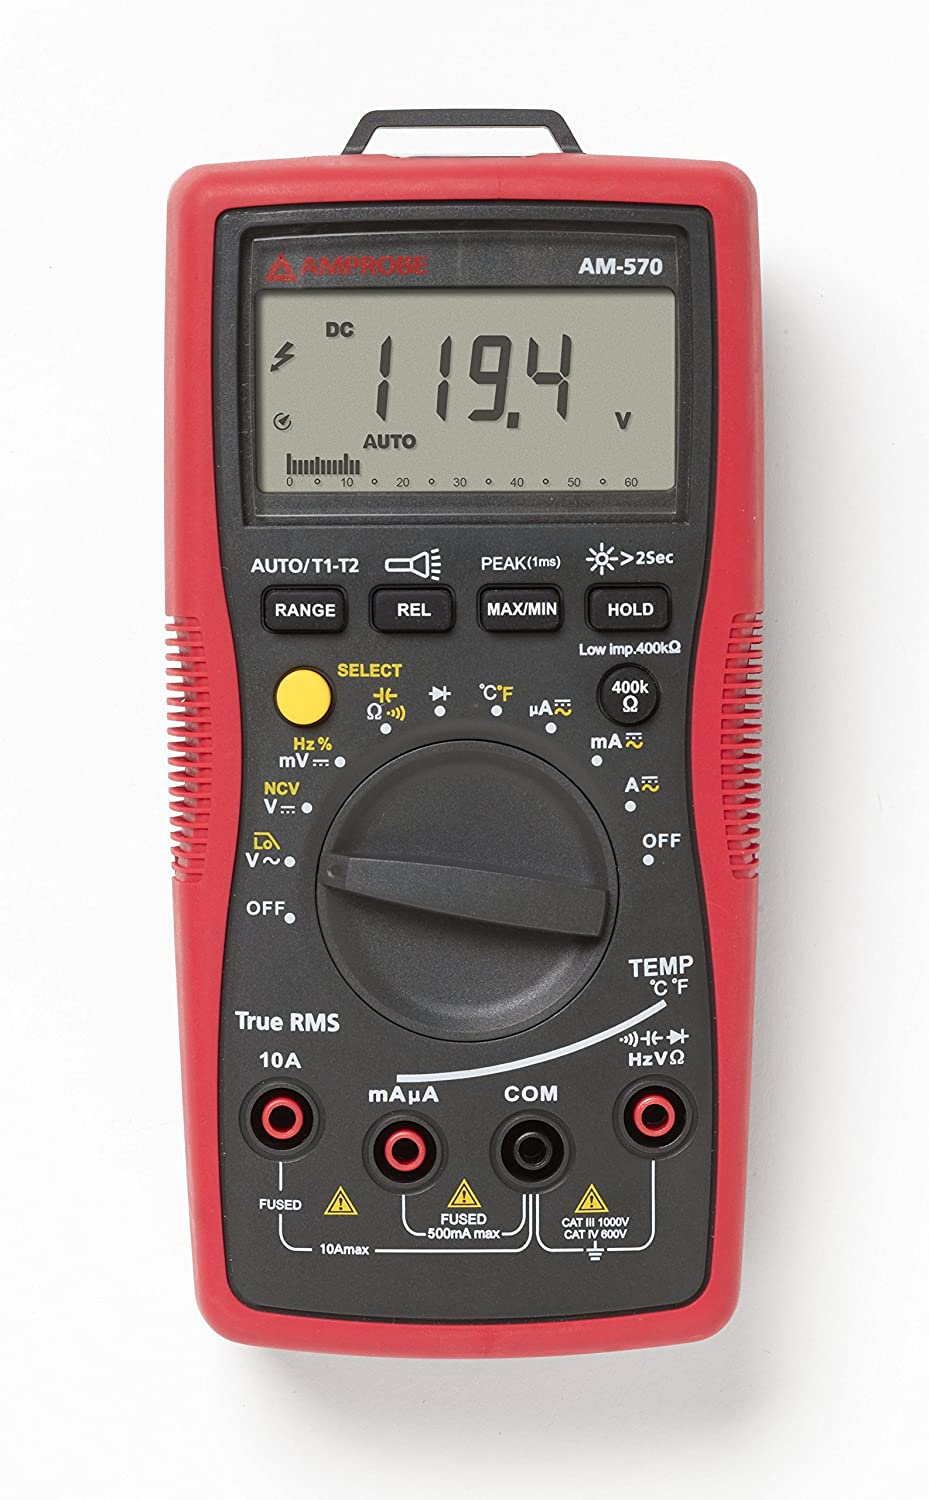 Amprobe AM-570 with True-RMS